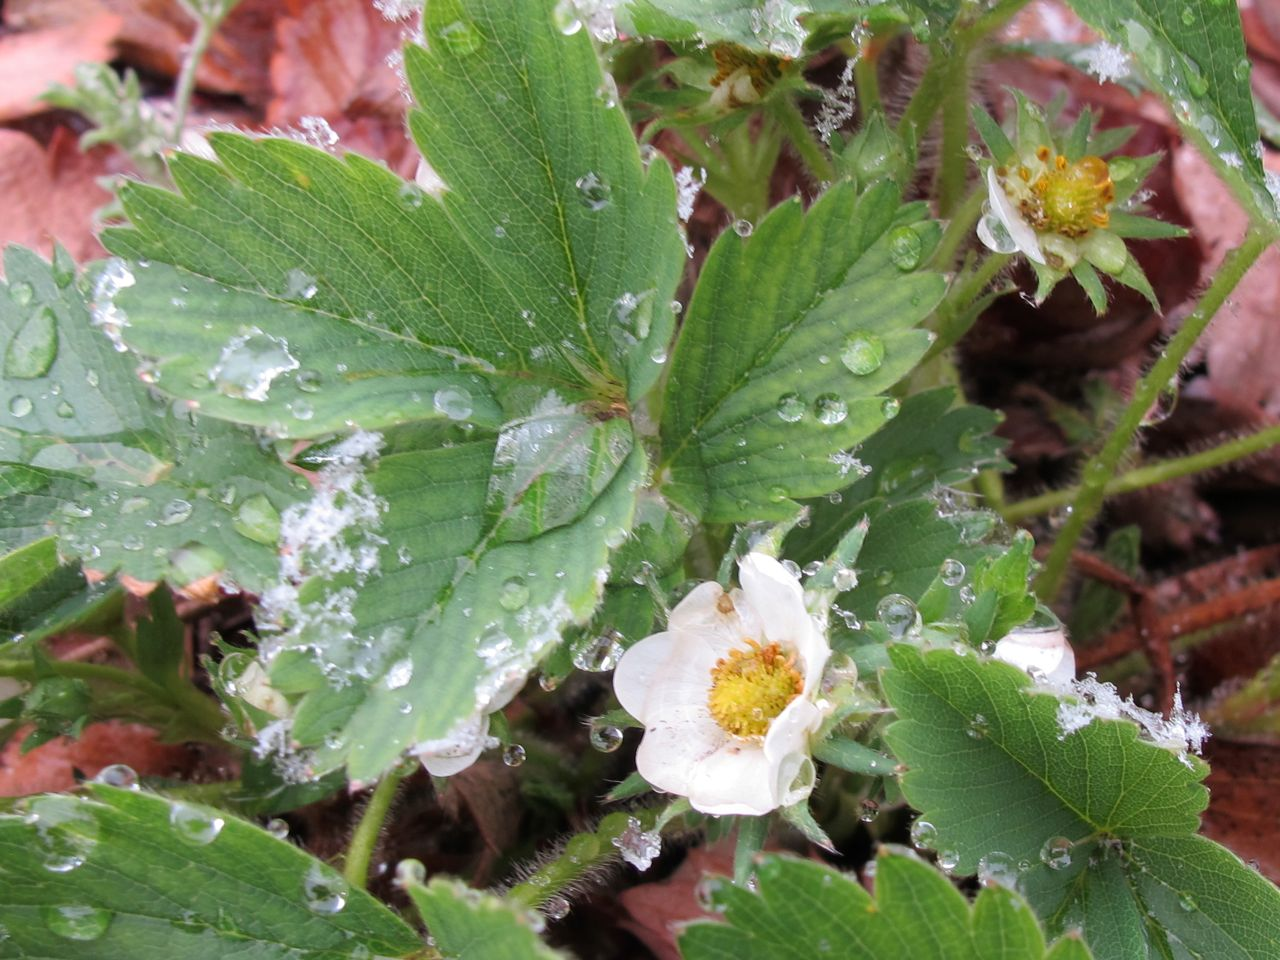 """A strawberry flower """"drinking"""" snowflake-melt droplets in my May Day garden."""